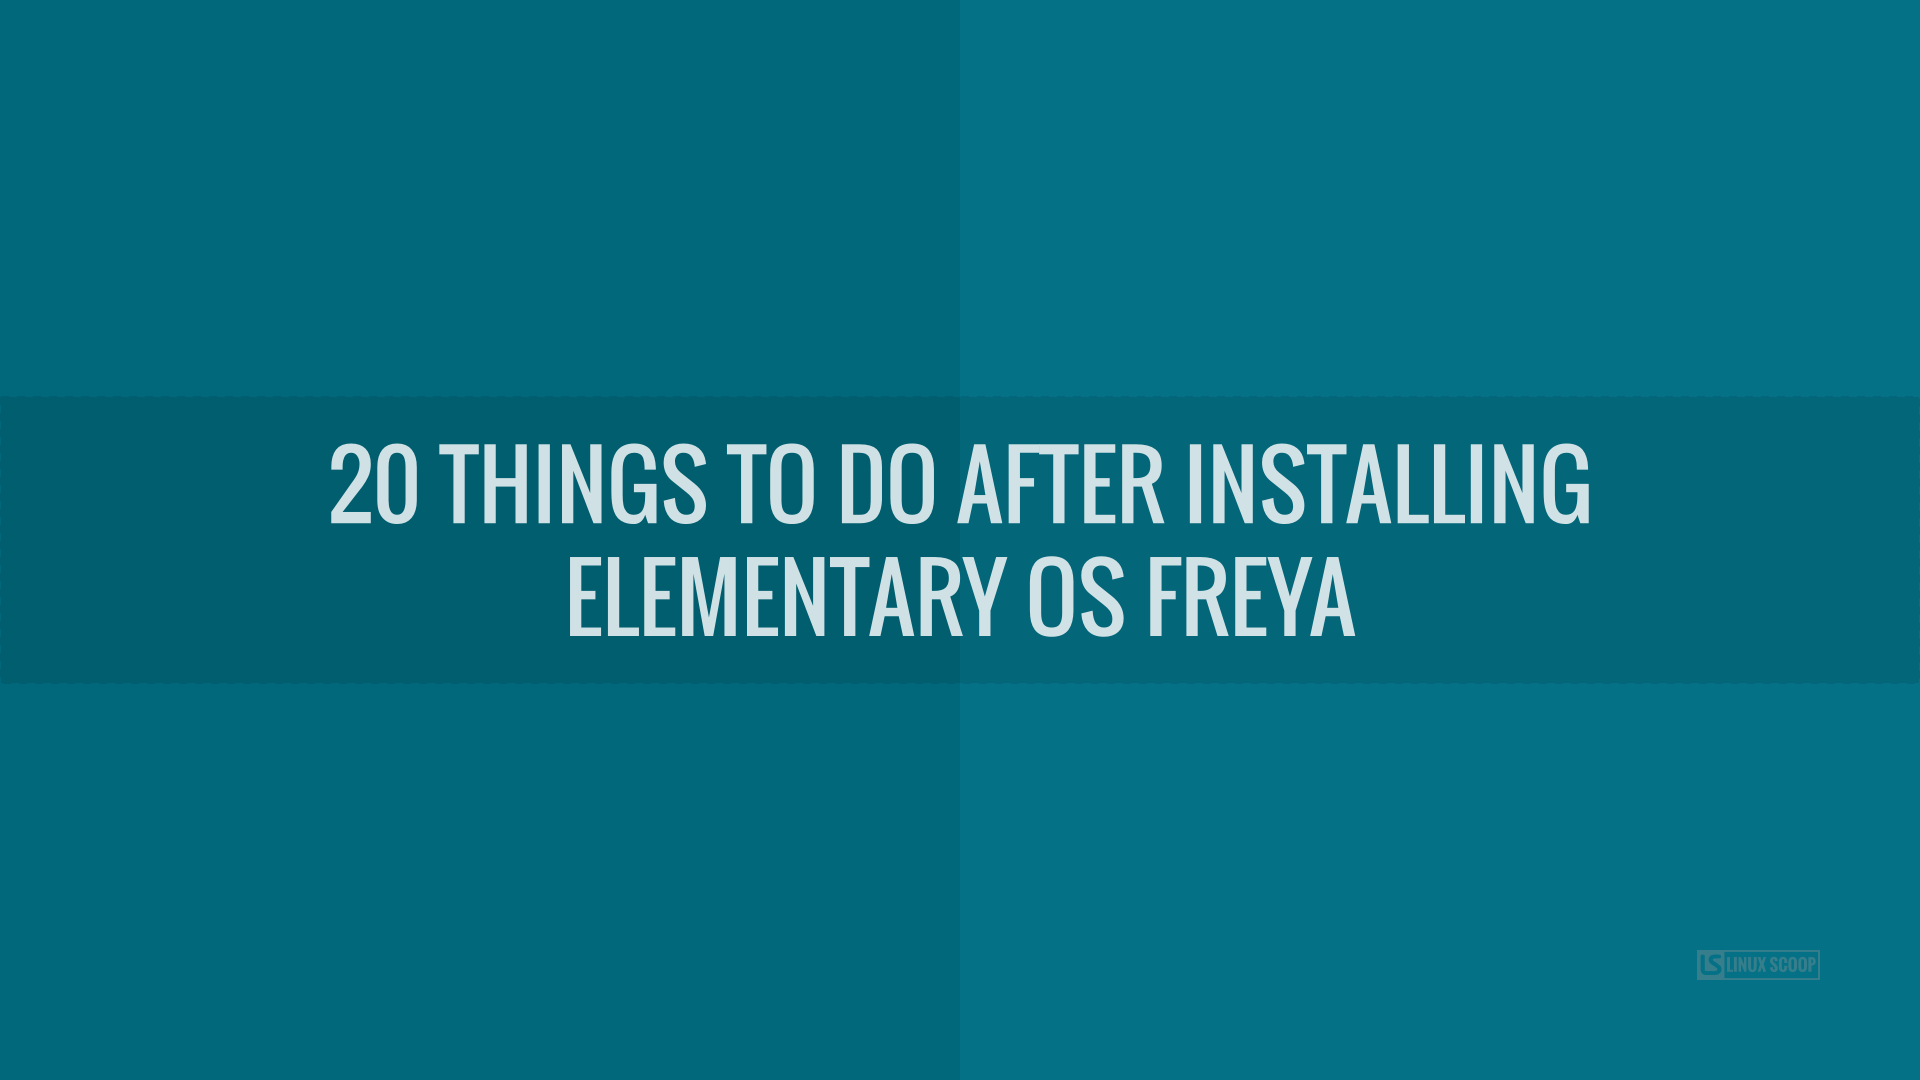 20 Things To Do After Installing Elementary OS Freya - Linux